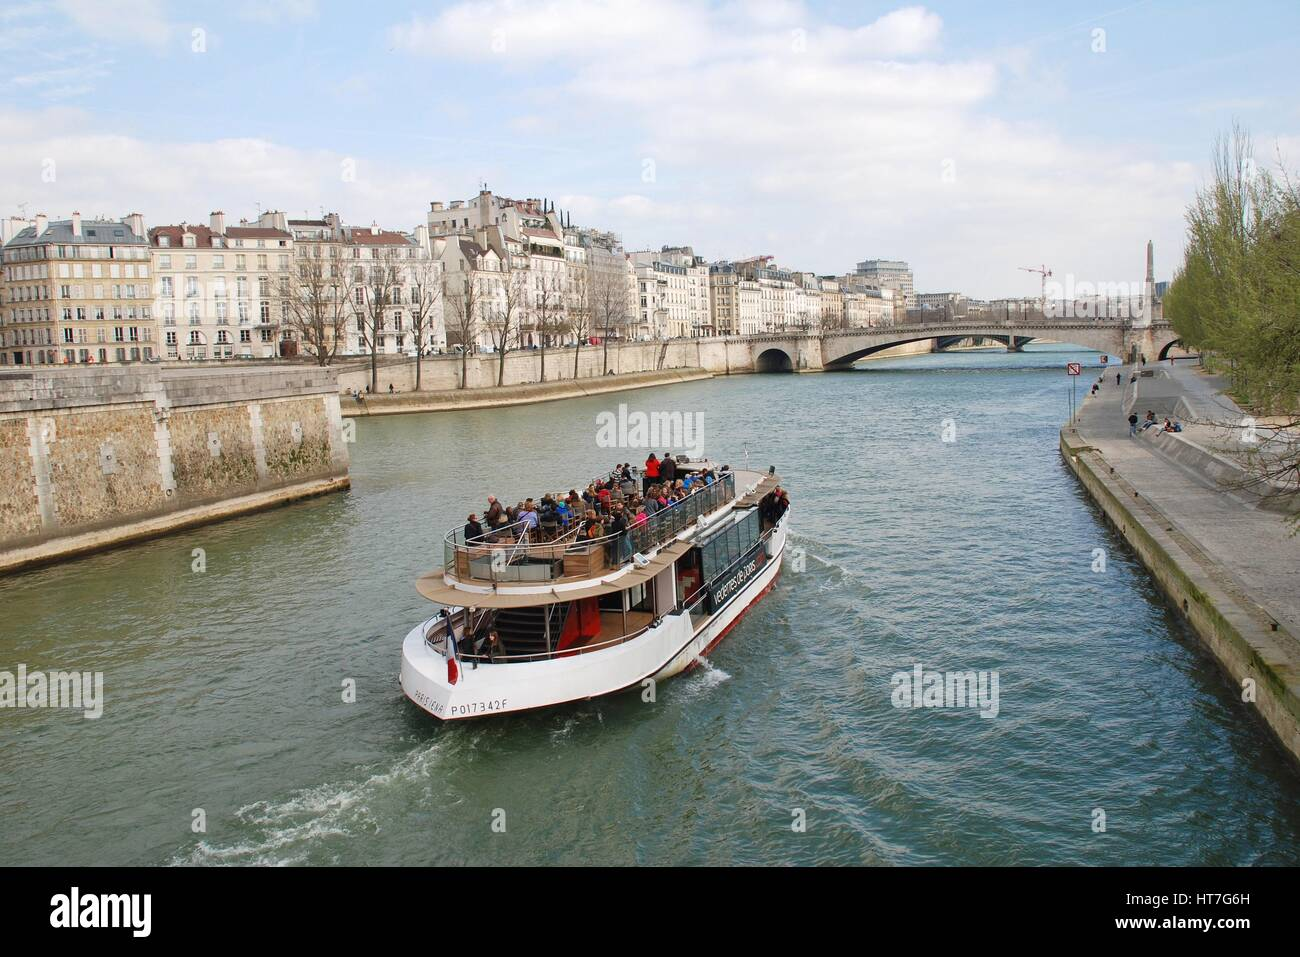 A pleasure boat cruises towards the Pont Saint Michel on the River Seine in Paris, France. Many sightseeing trips - Stock Image